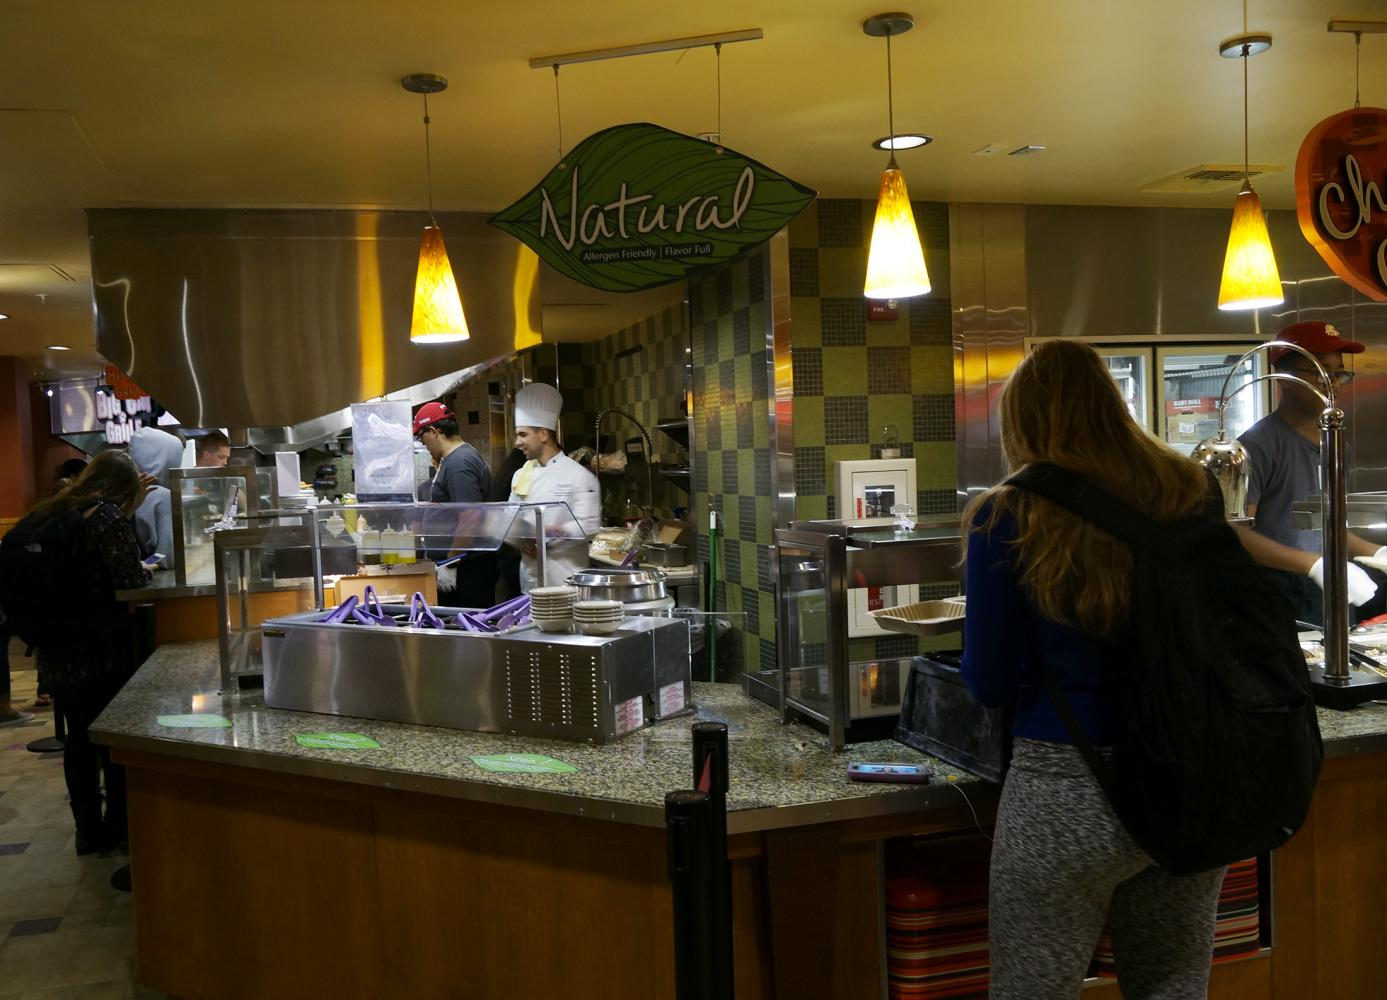 The dining halls label all food with the dietary differences to make choosing meals easy.